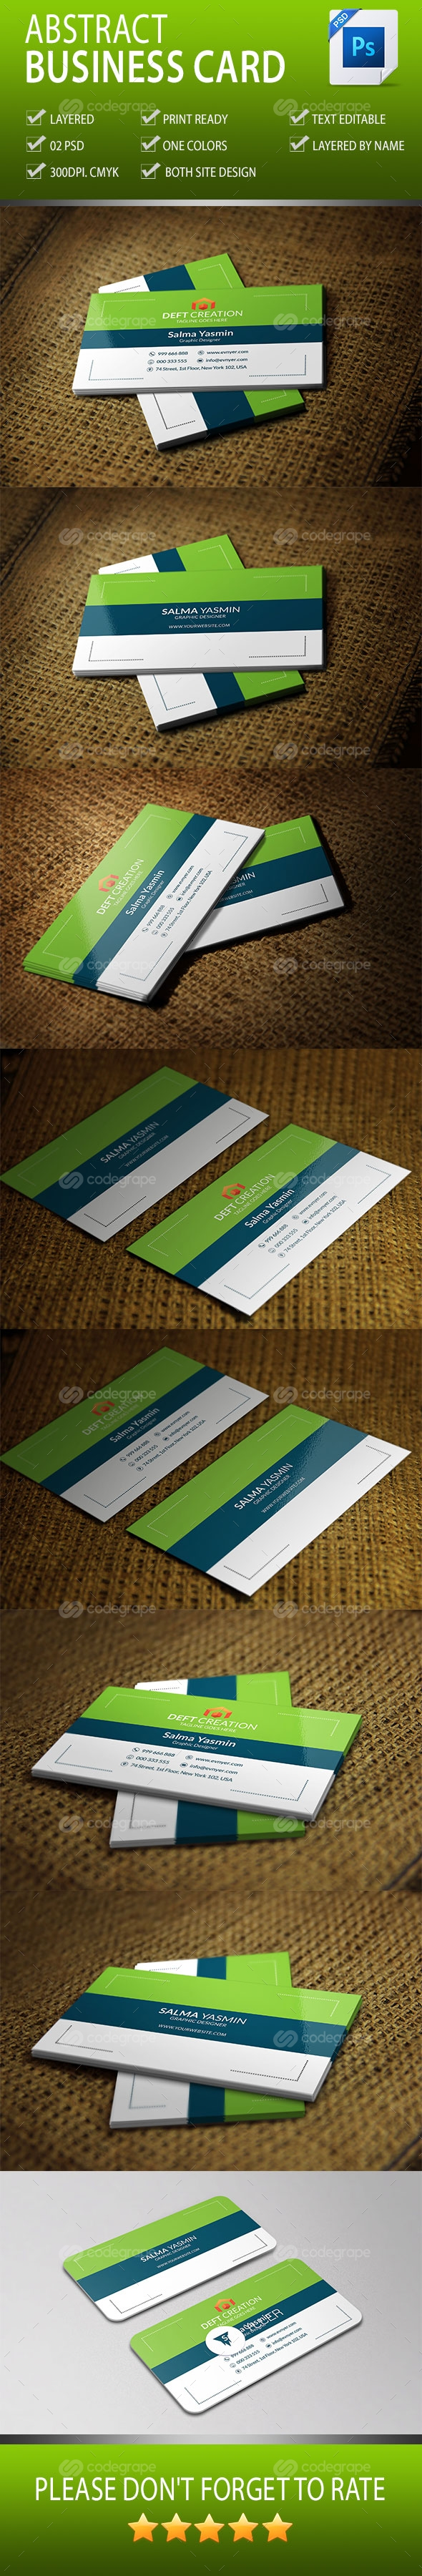 Abstract Business Card Vol-2.0